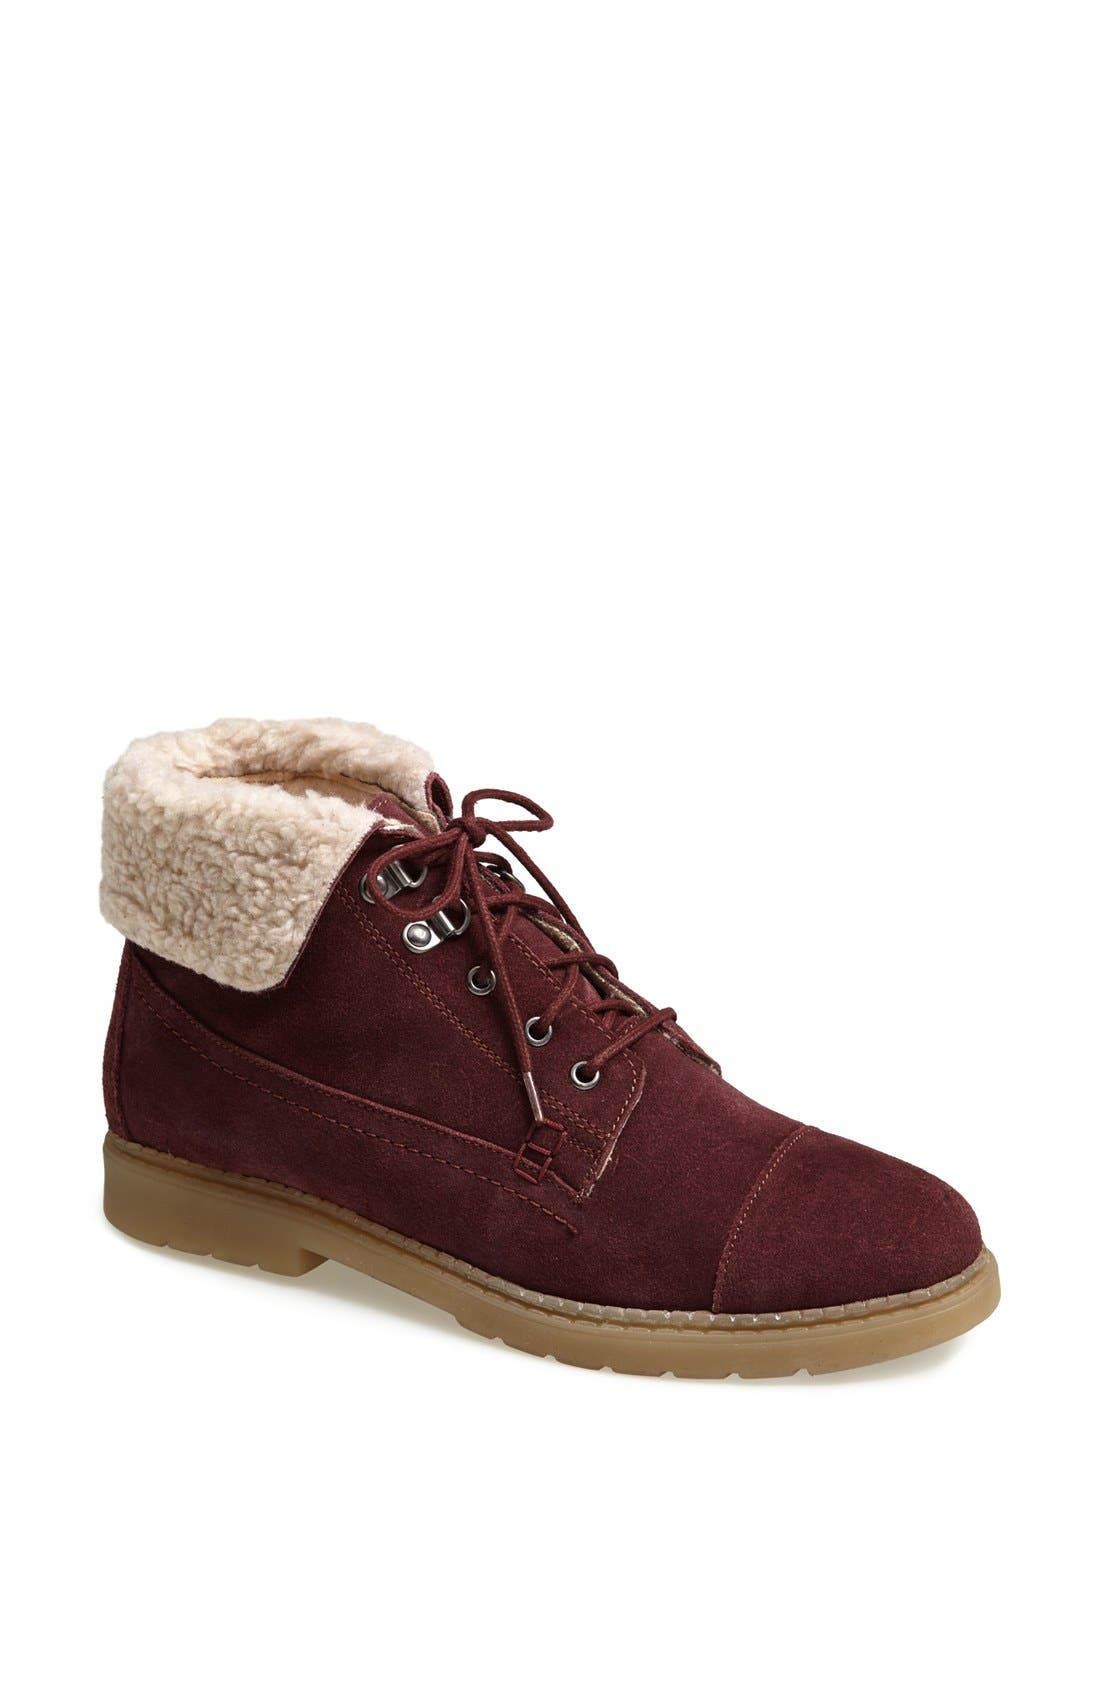 Alternate Image 1 Selected - Topshop 'Murry' Cuffed Hiker Boot